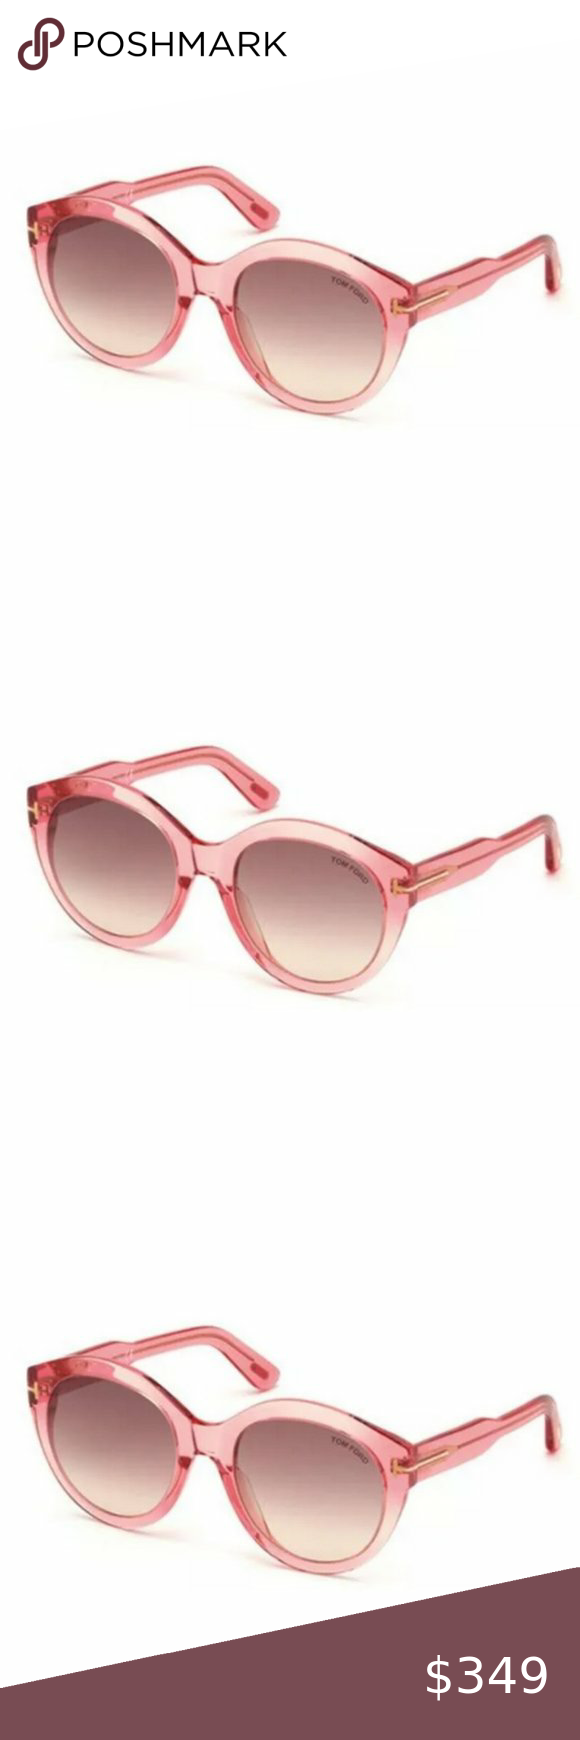 Tom Ford Ft0661 72f 54 Sunglasses 54mm 140mm 21mm Sunglasses Tom Ford Ford Accessories